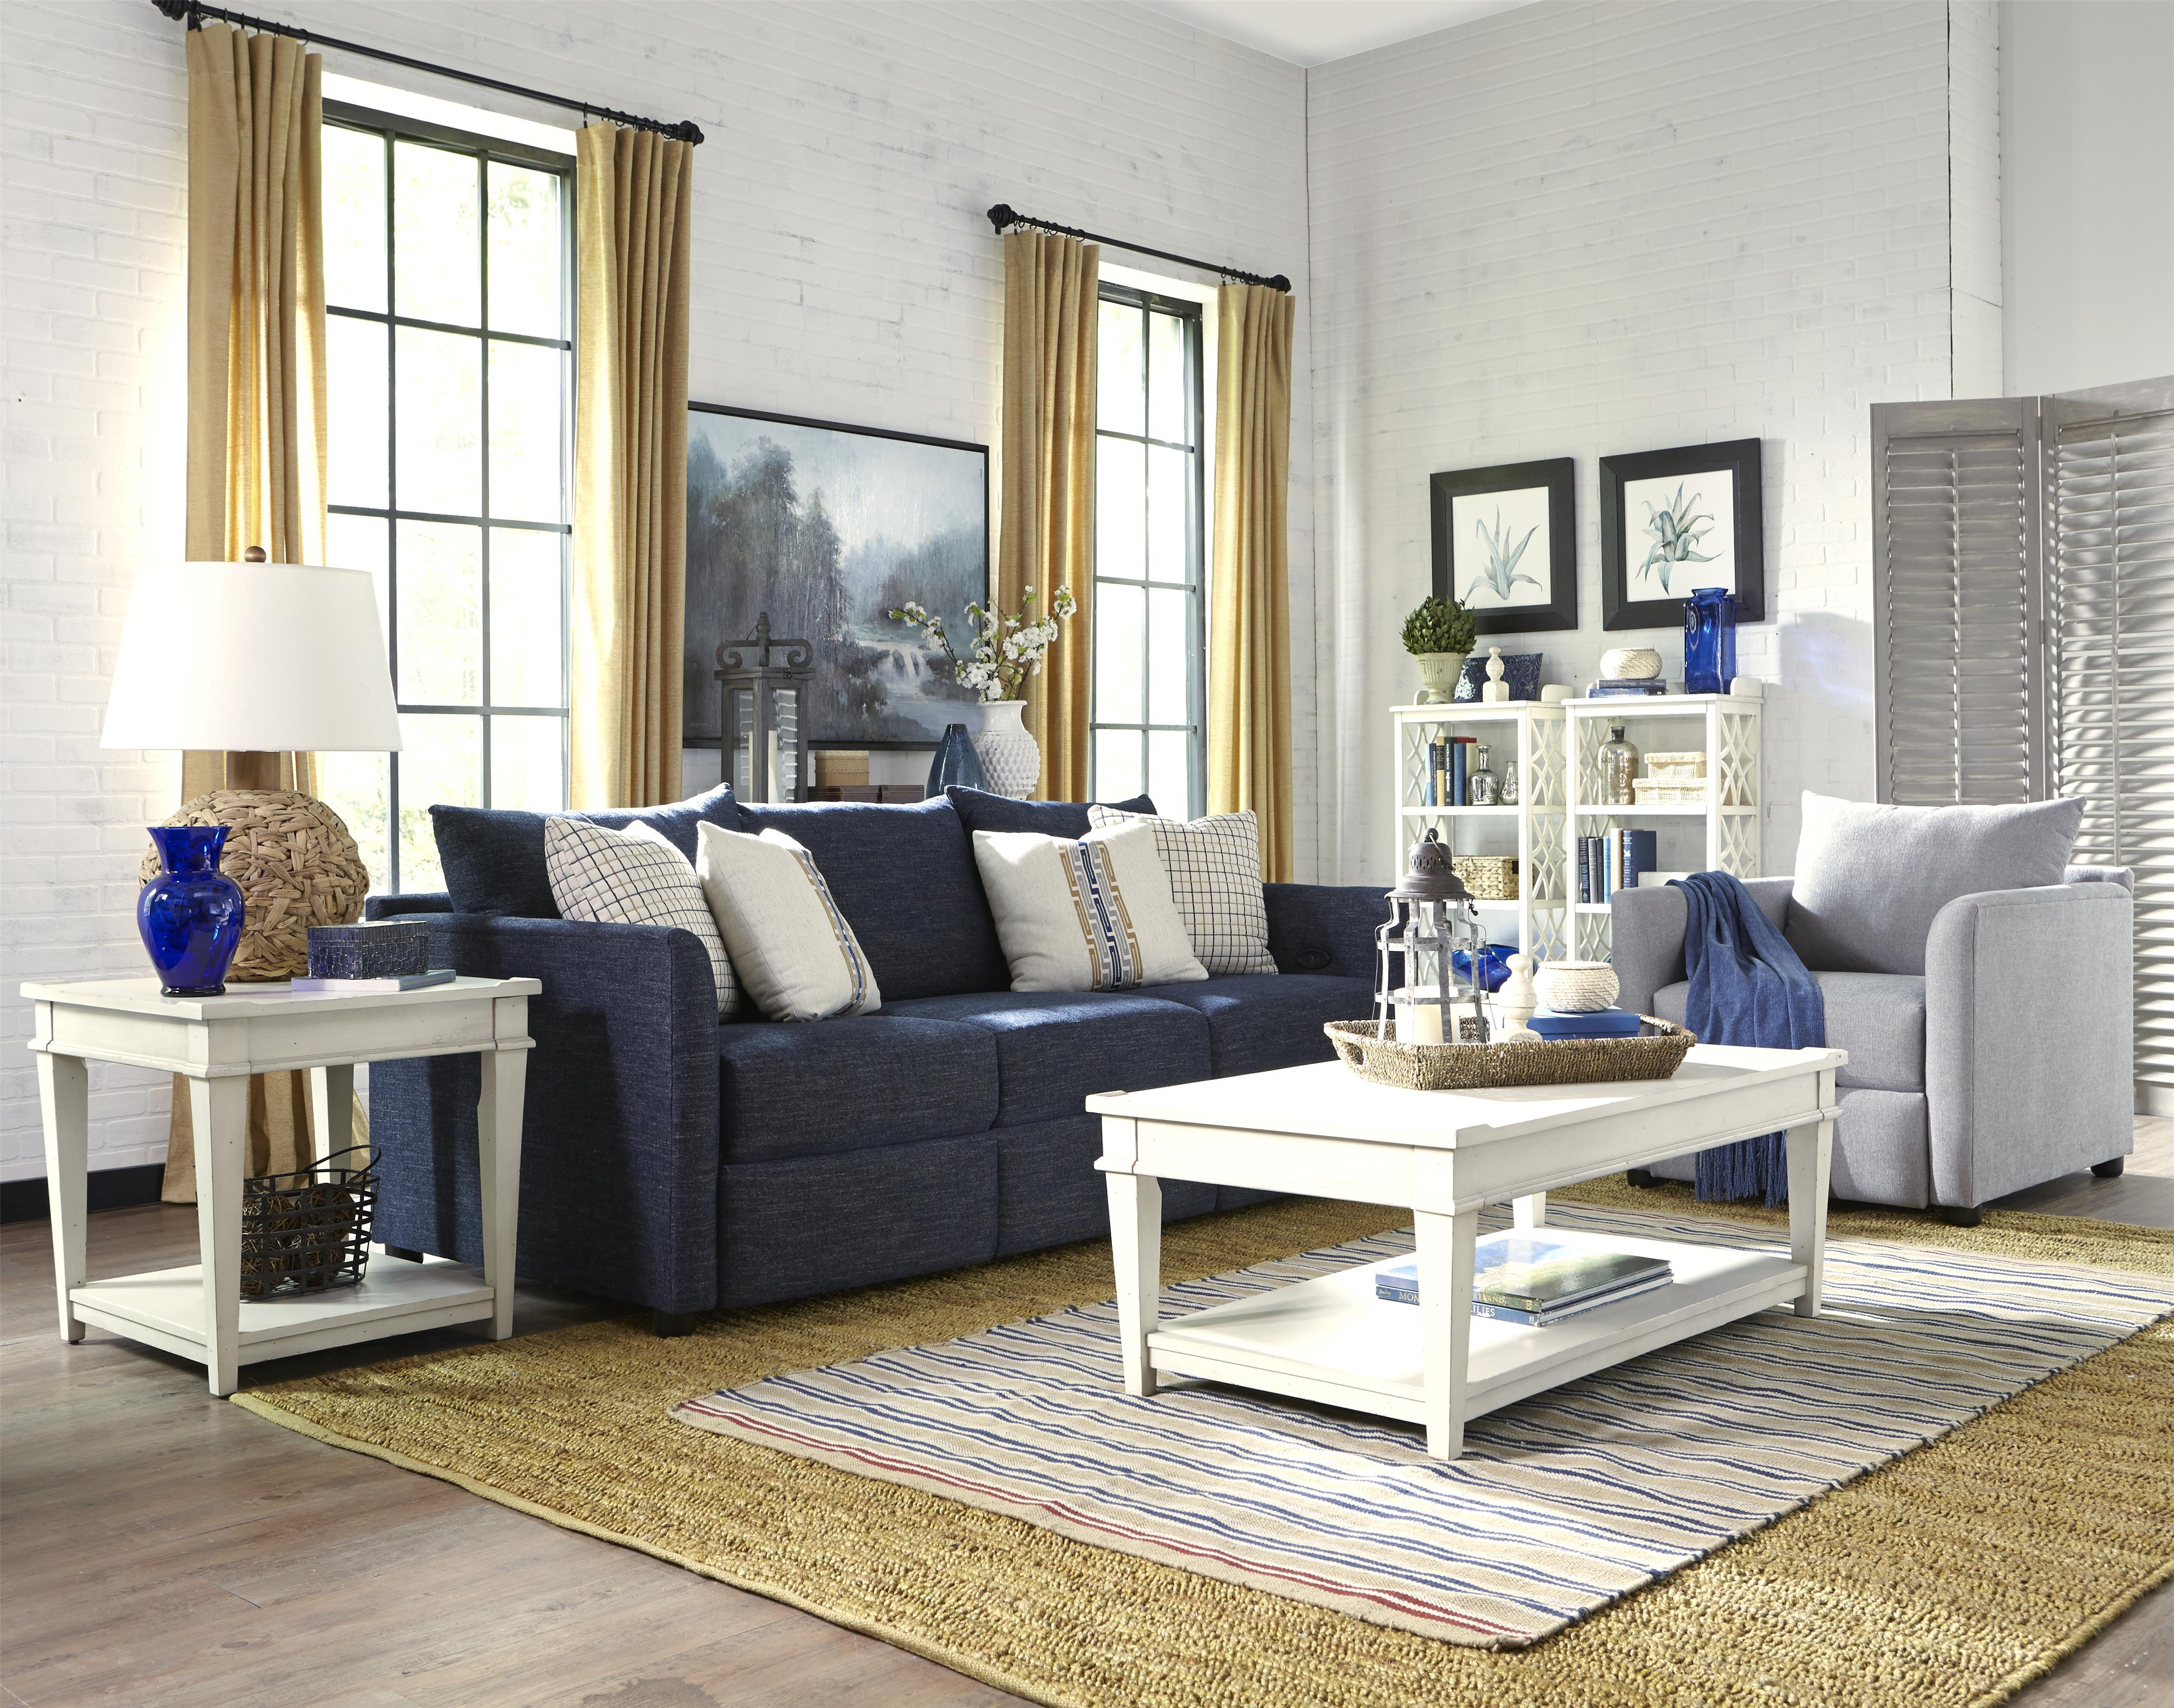 Atlanta Reclining Living Room Group by Klaussner at Northeast Factory Direct